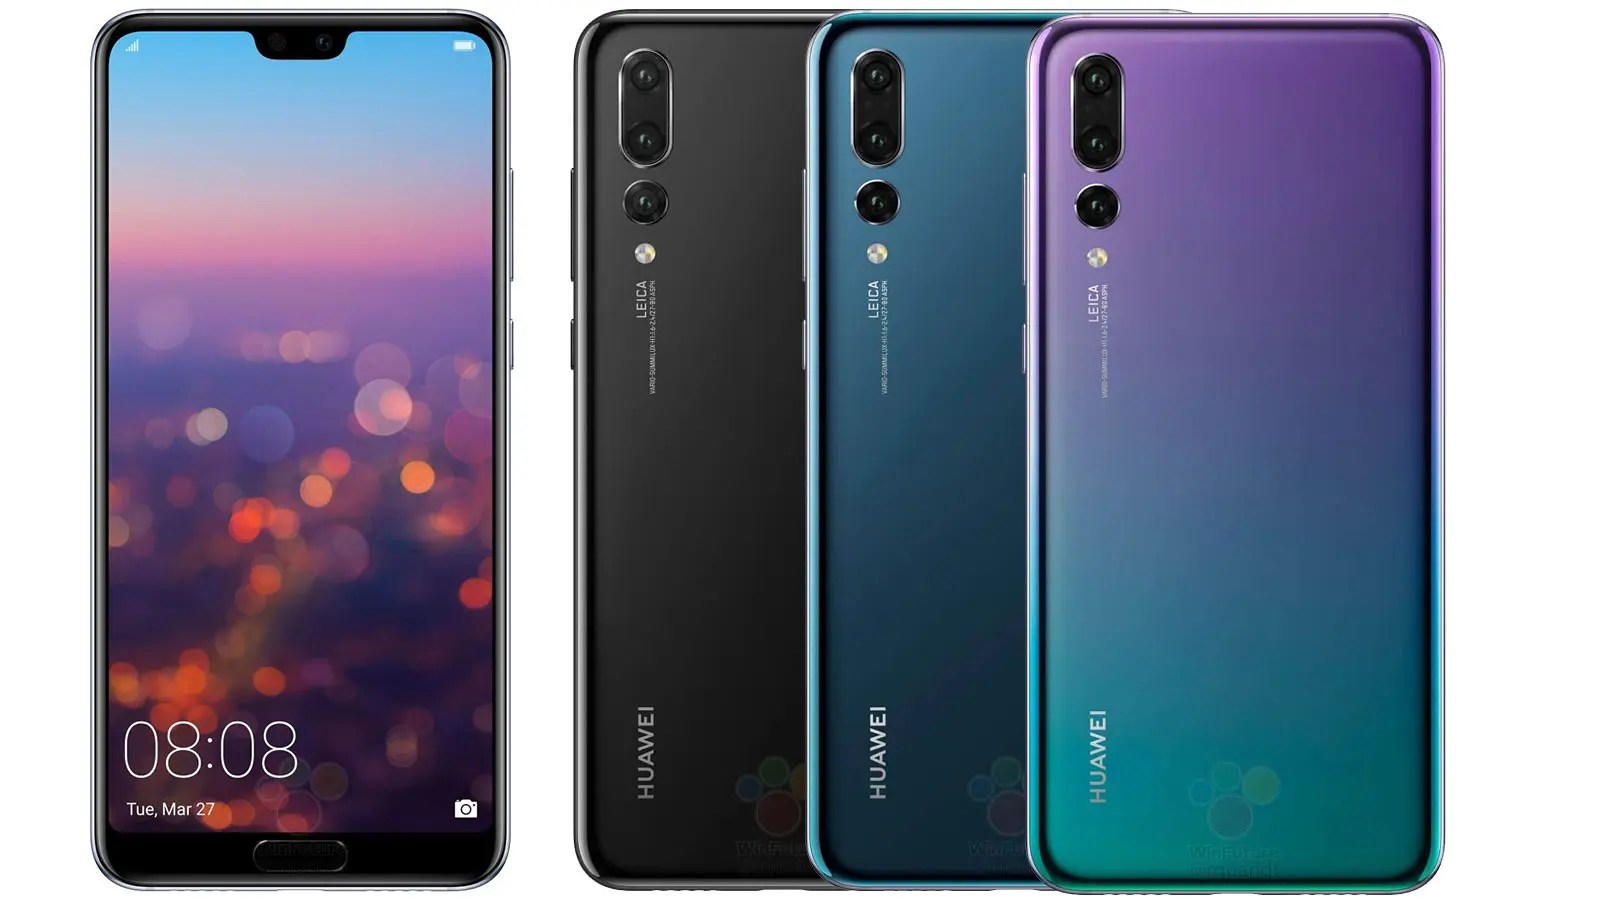 Ulefone Armor 2 Test X 4g Power 3s Reviews Update Huawei P20 Pro Midnight Blue Vs Black 9 1 6 Huawei Has Officially